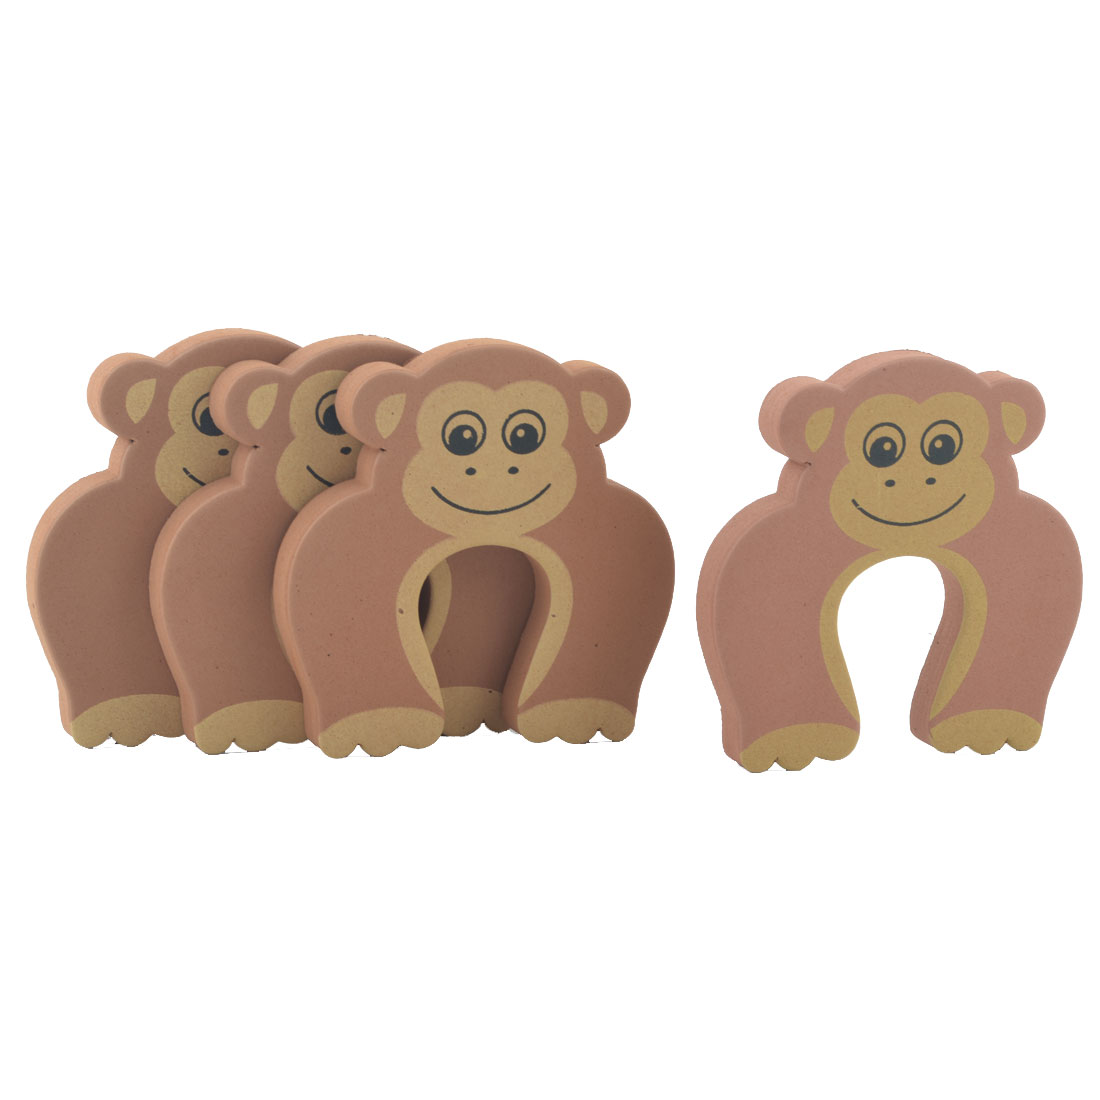 EVA Brown Monkey Shape Finger Protector Safety Guard Doorstop Door Stopper Lock 4pcs